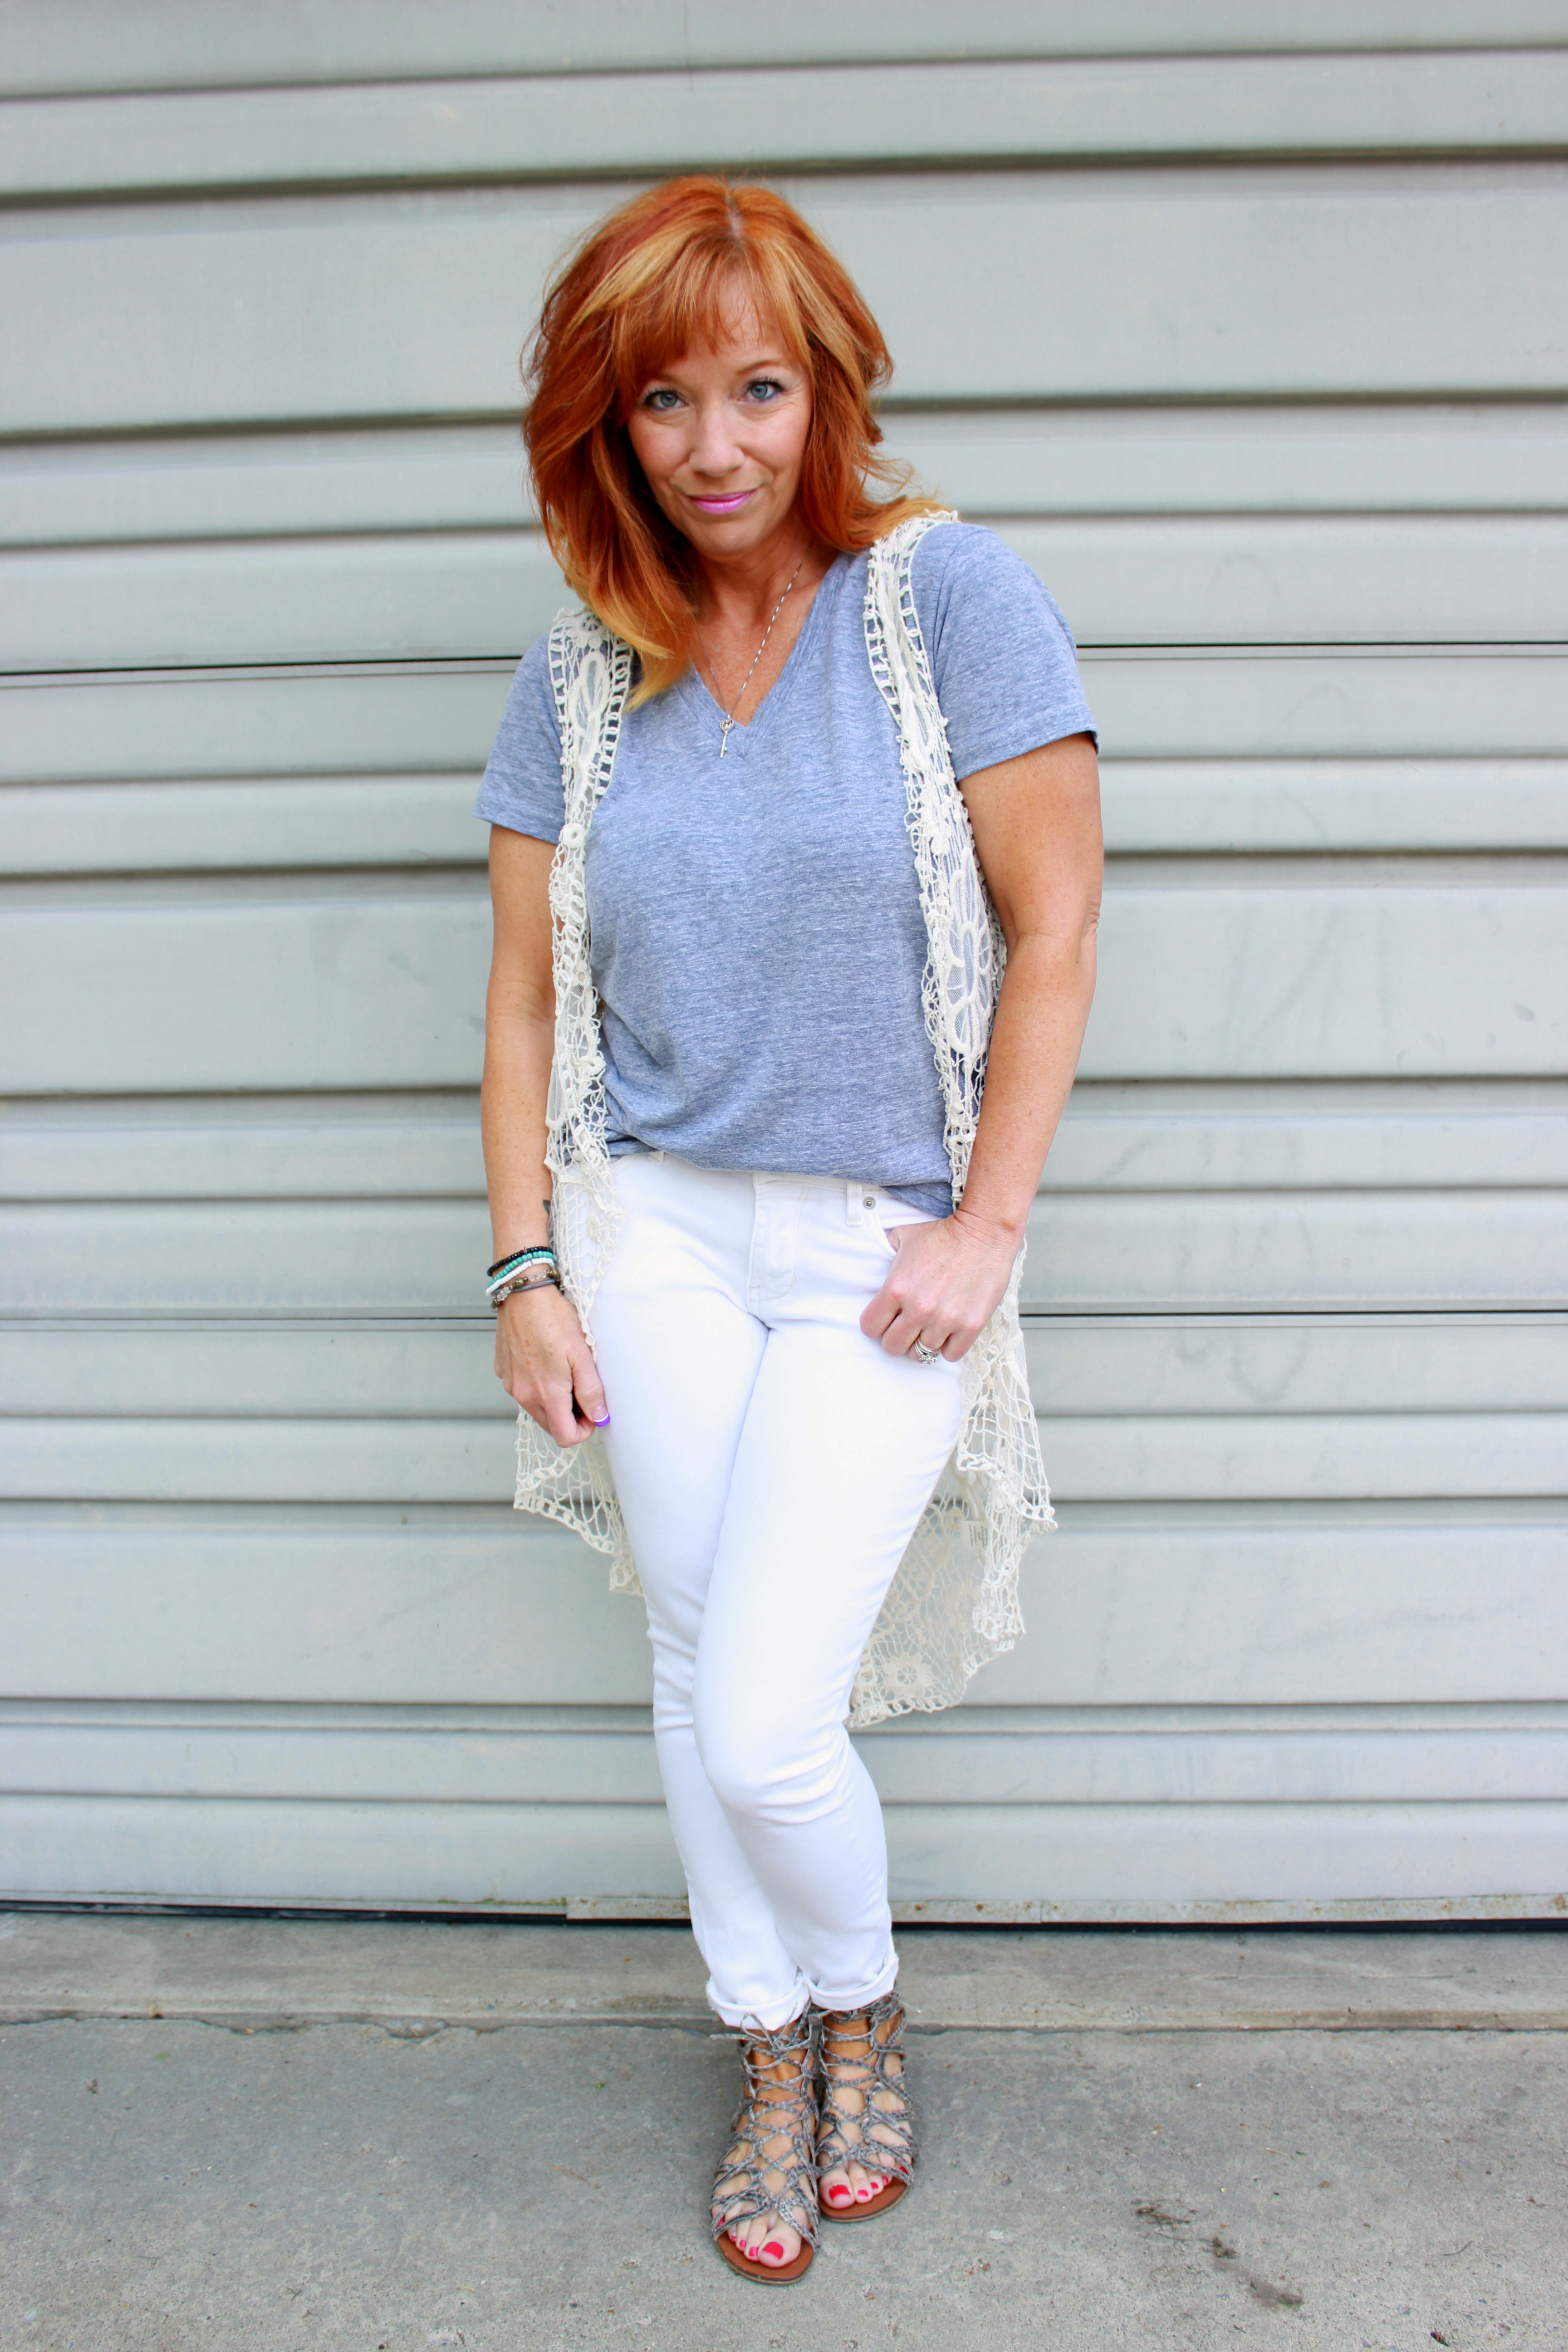 Long Crochet Vest White Jeans Adventures In Housecleaning